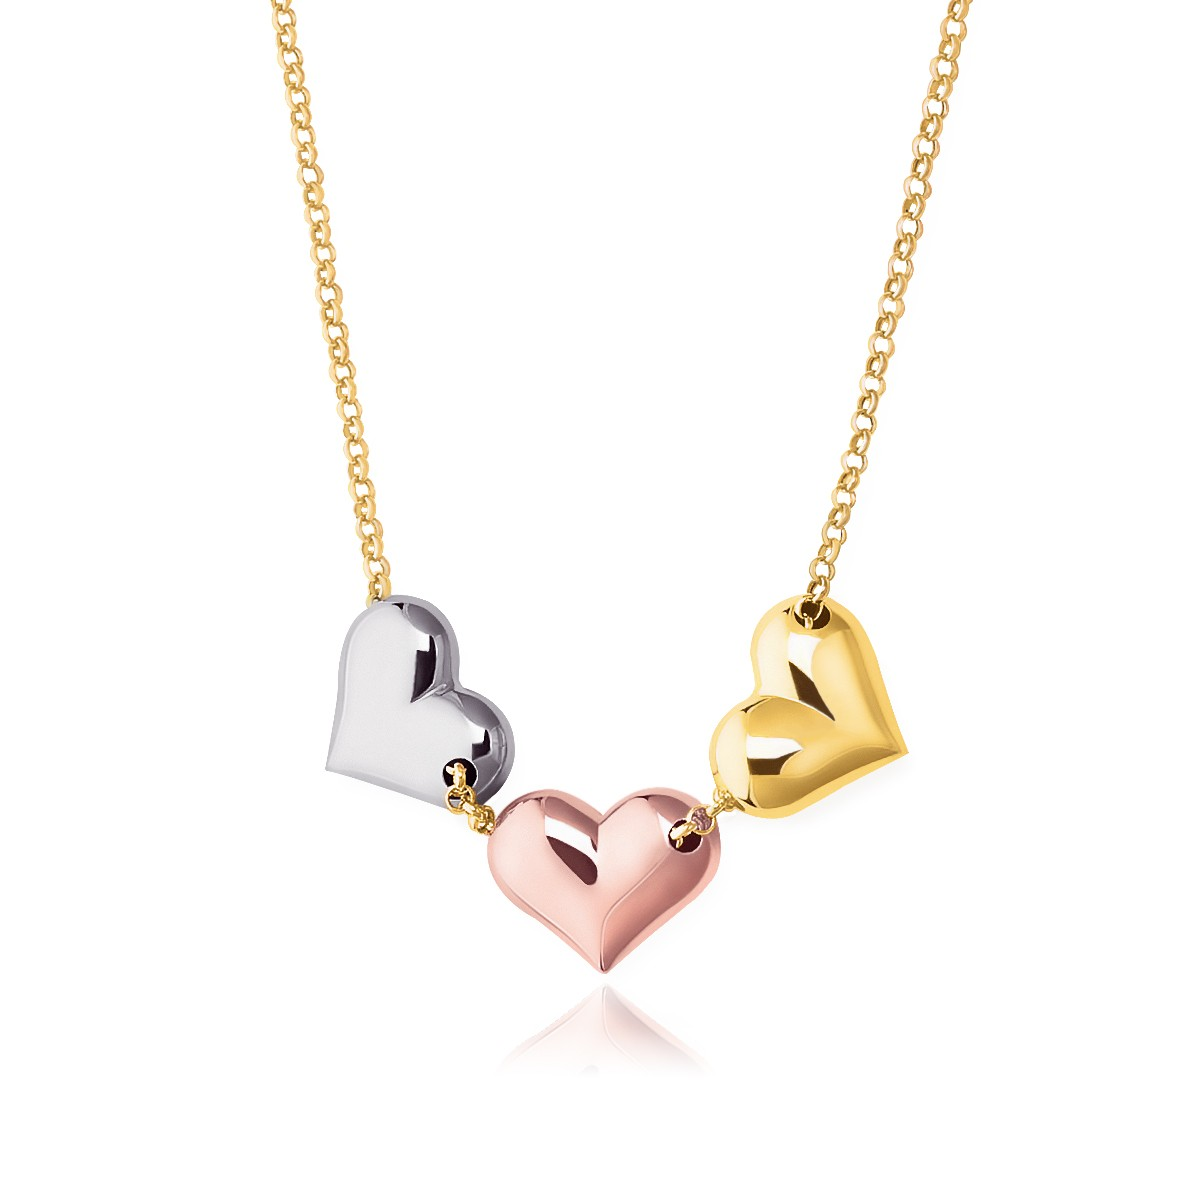 Triple Heart Necklace In 14k Tricolor Gold  Richard